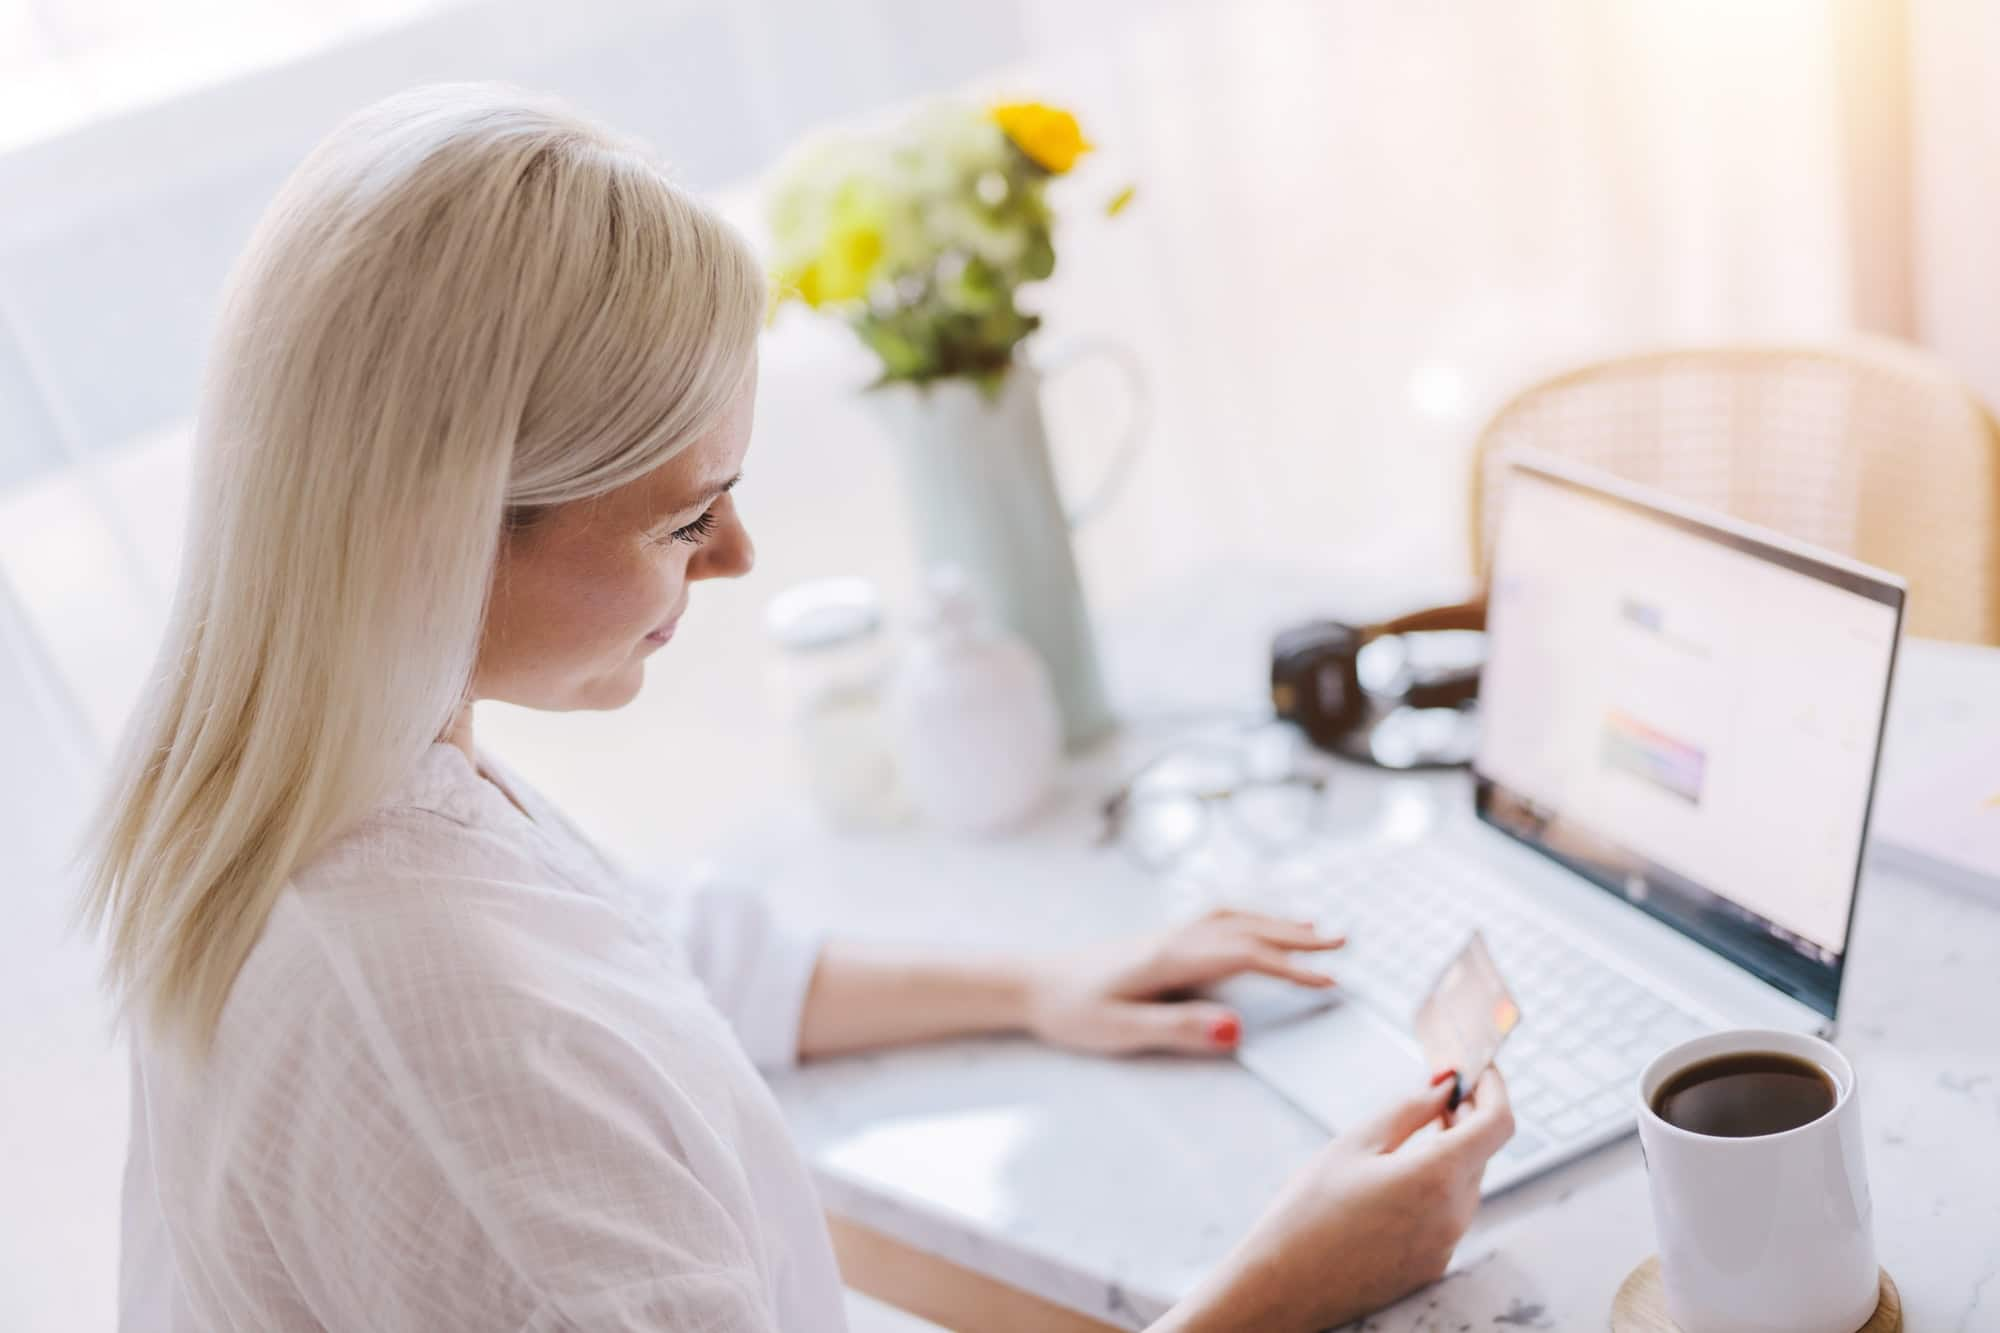 Woman paying online with her credit card.